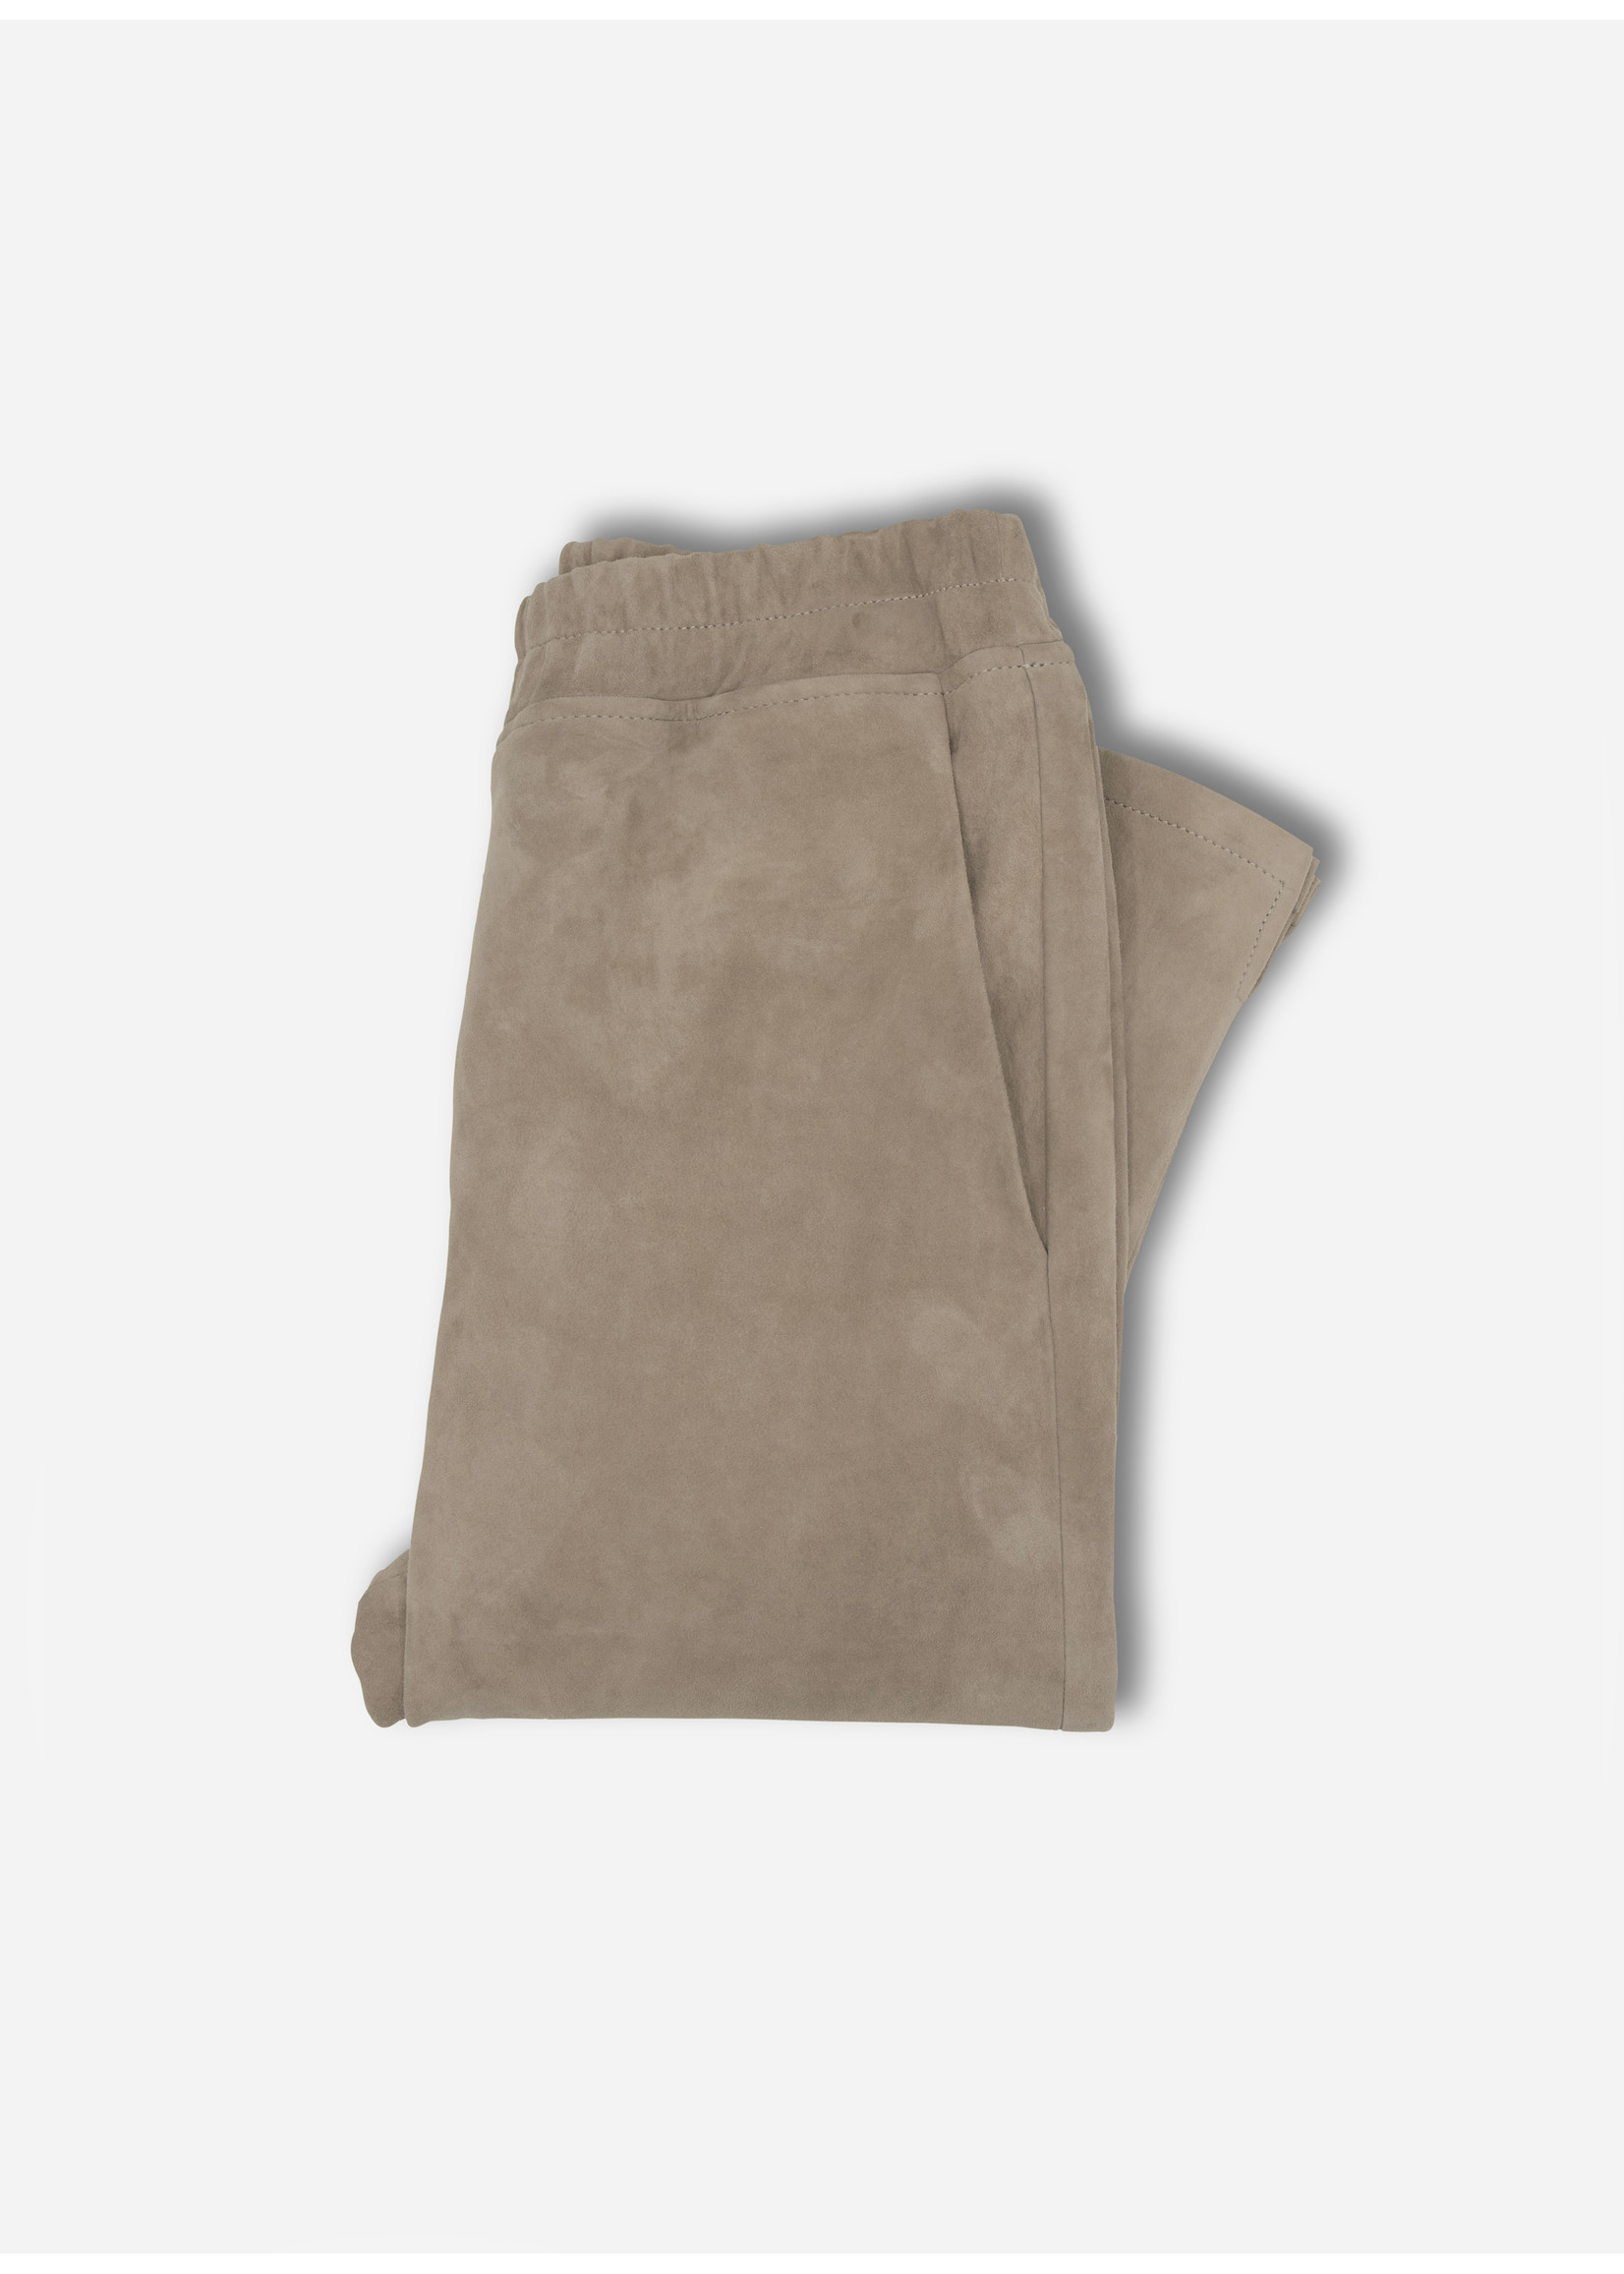 Arma Chatou stretch suede grey taupe